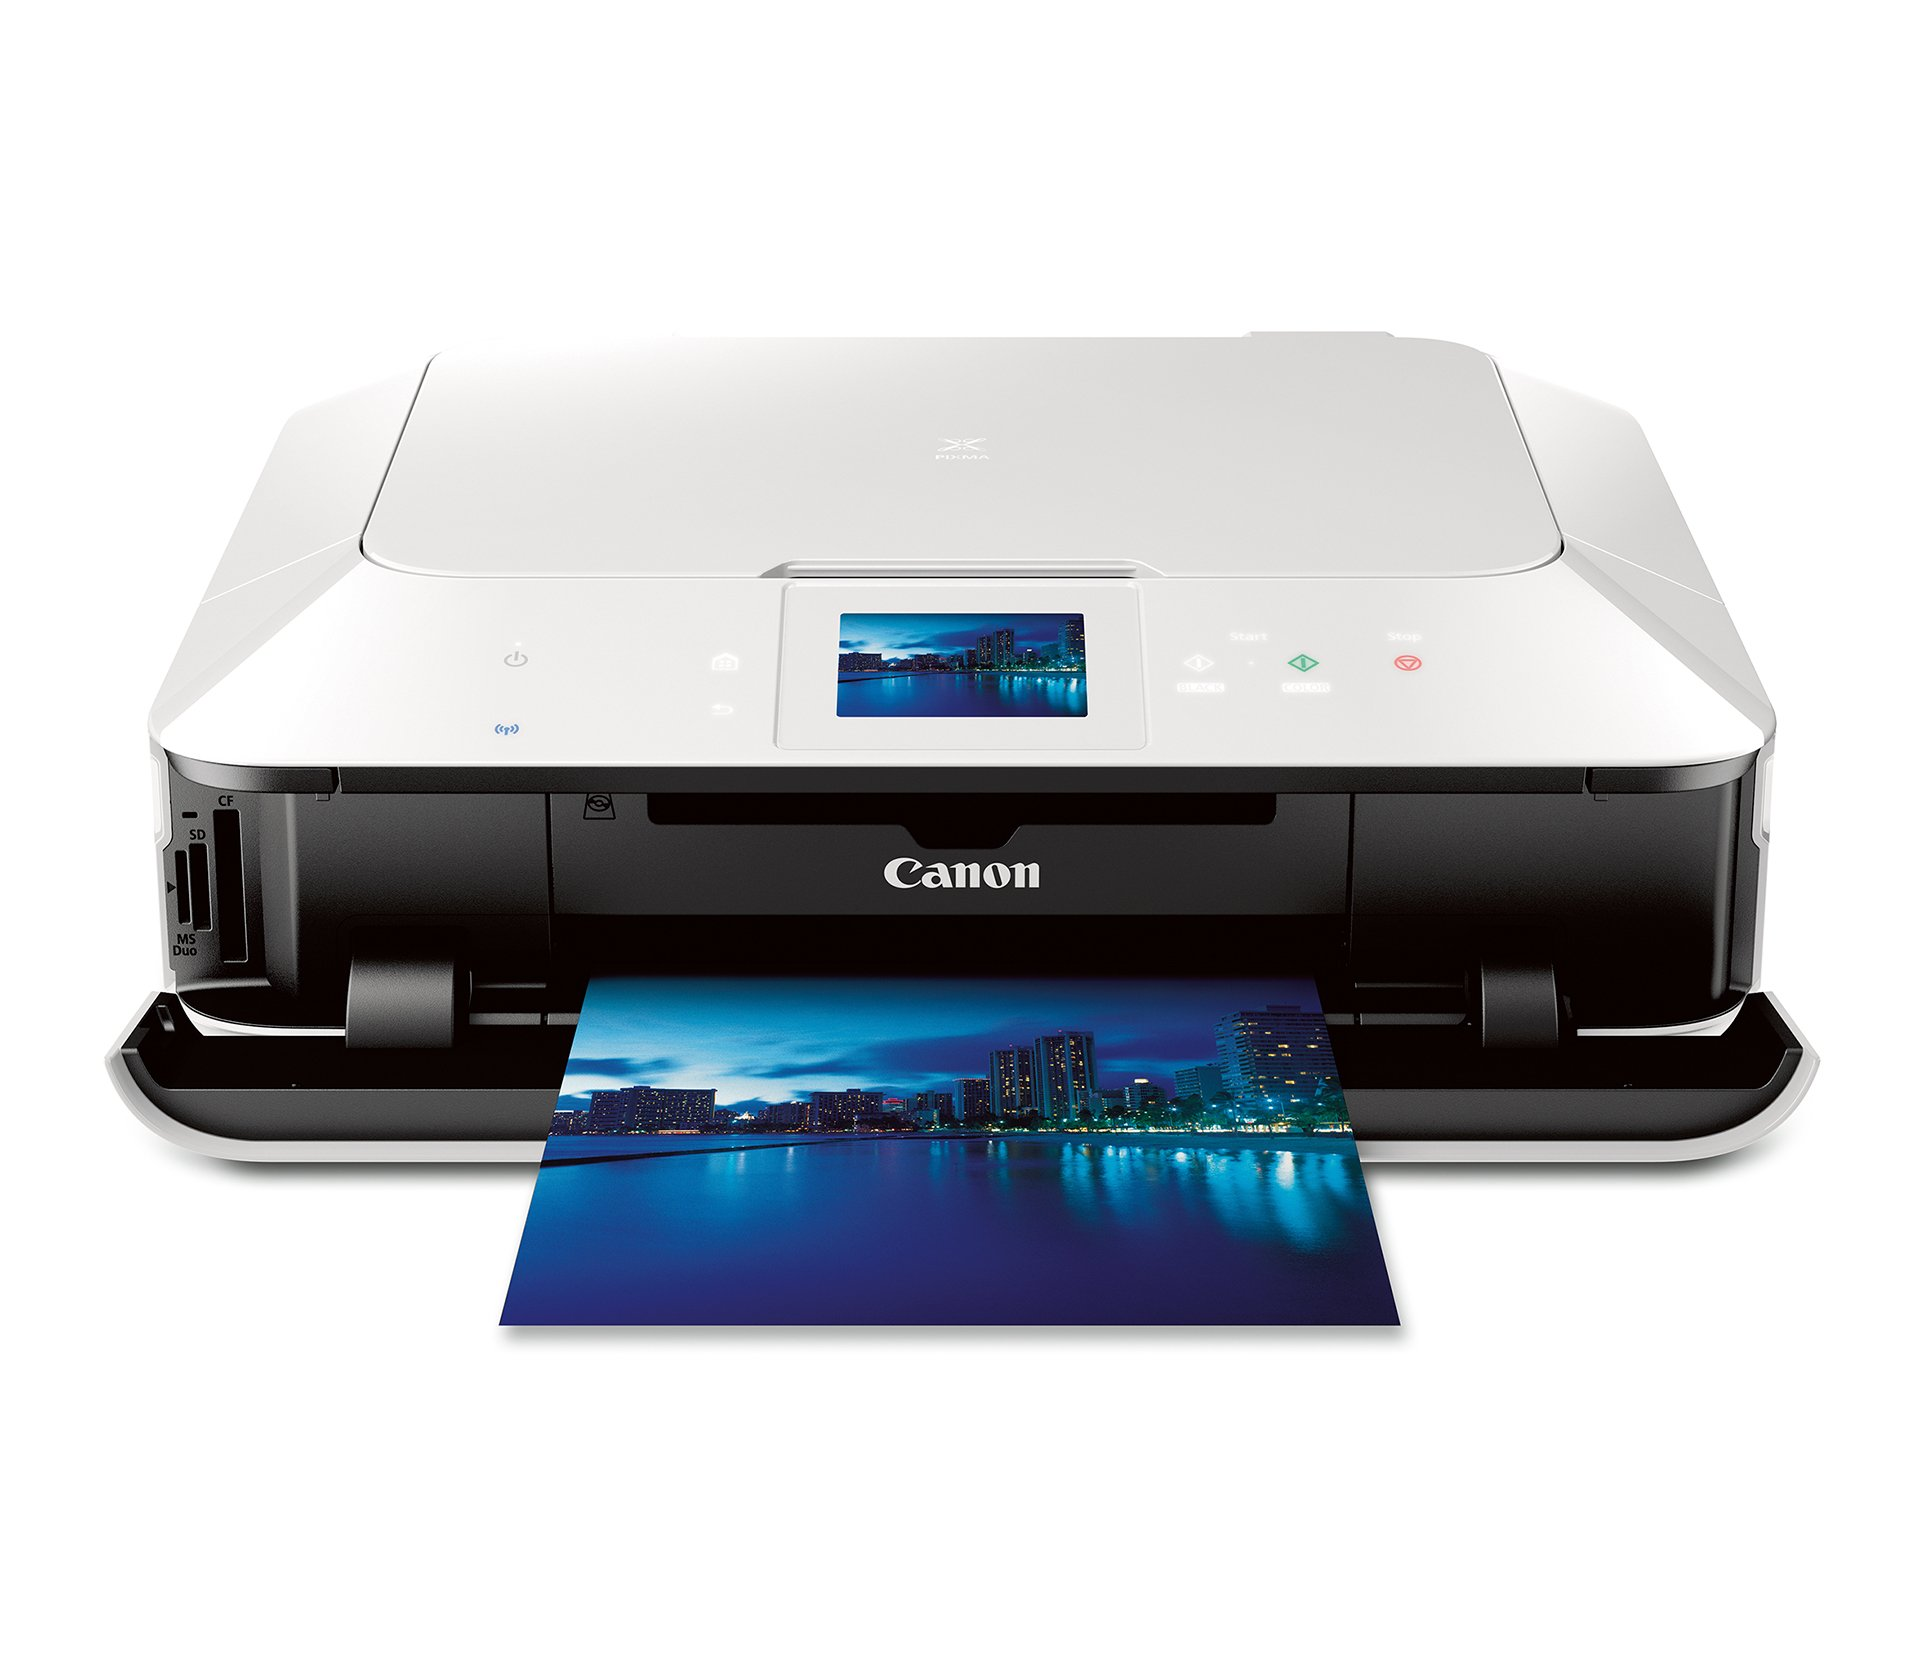 Canon PIXMA MG7120 Wireless Color Photo All-In-One Printer, Mobile Smart Phone and Tablet Printing, White